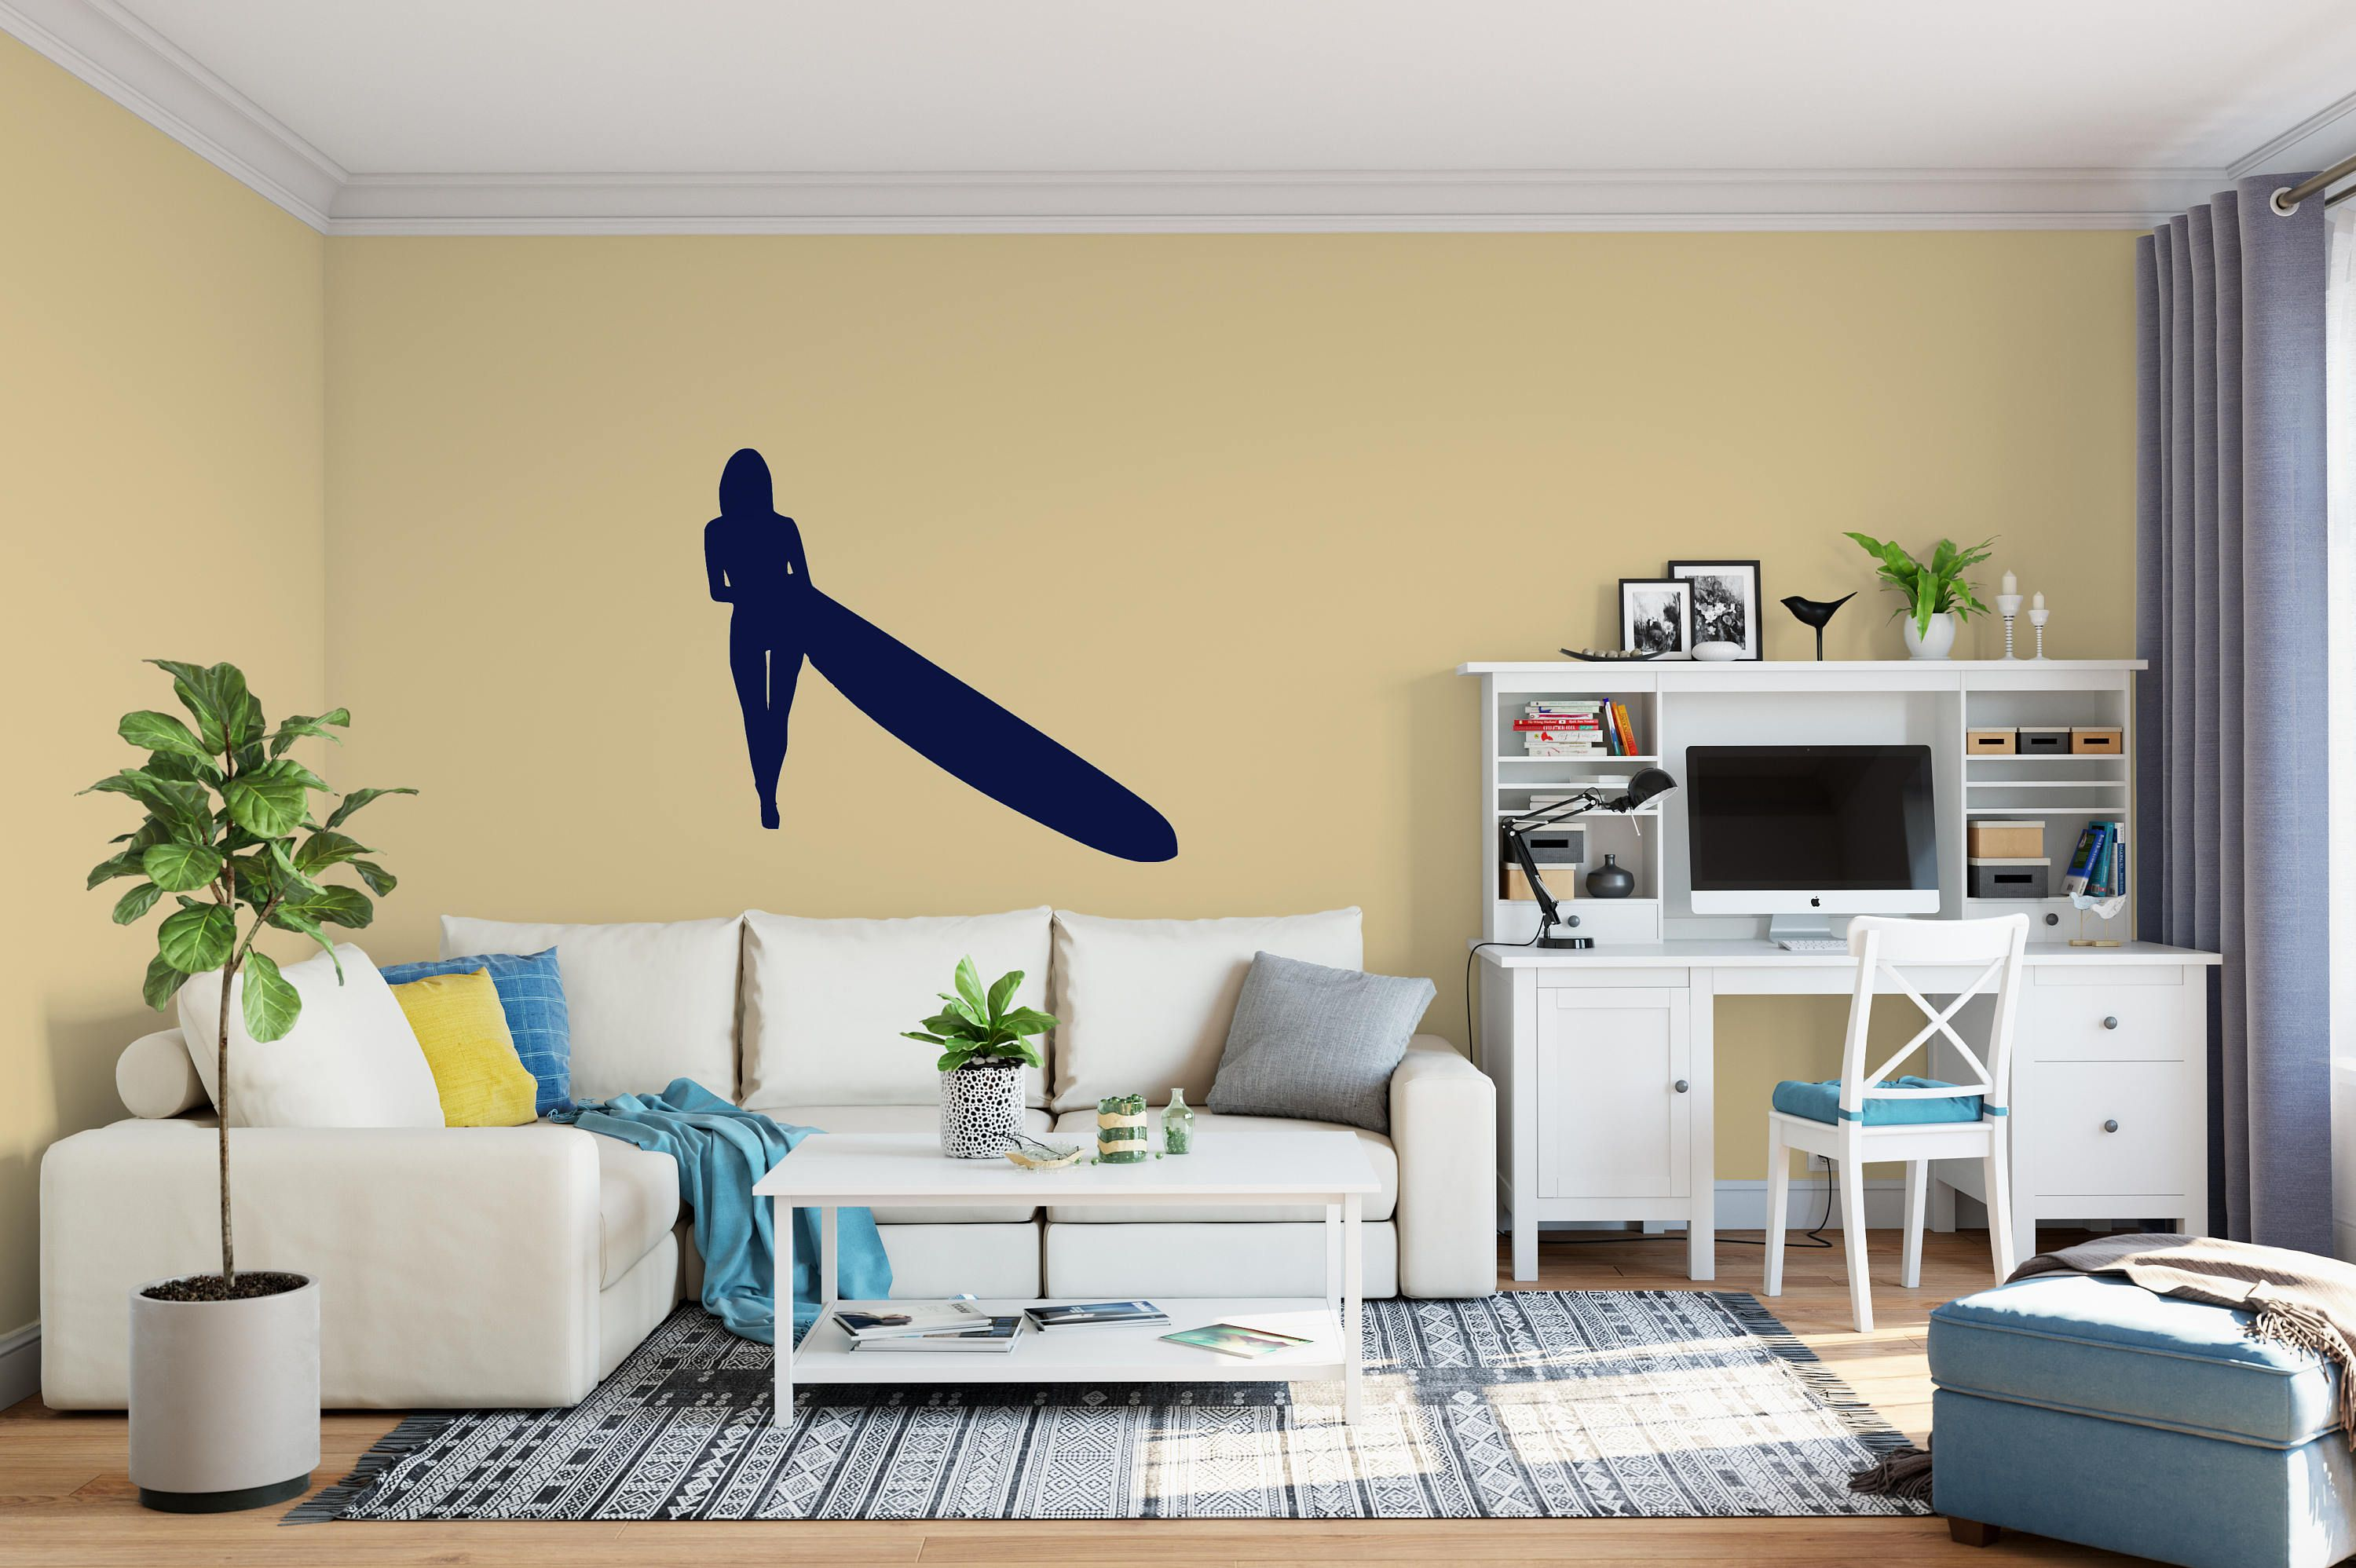 Surfer Decal - Small & Large Vinyl Surfer Wall Decals - Boys Room ...